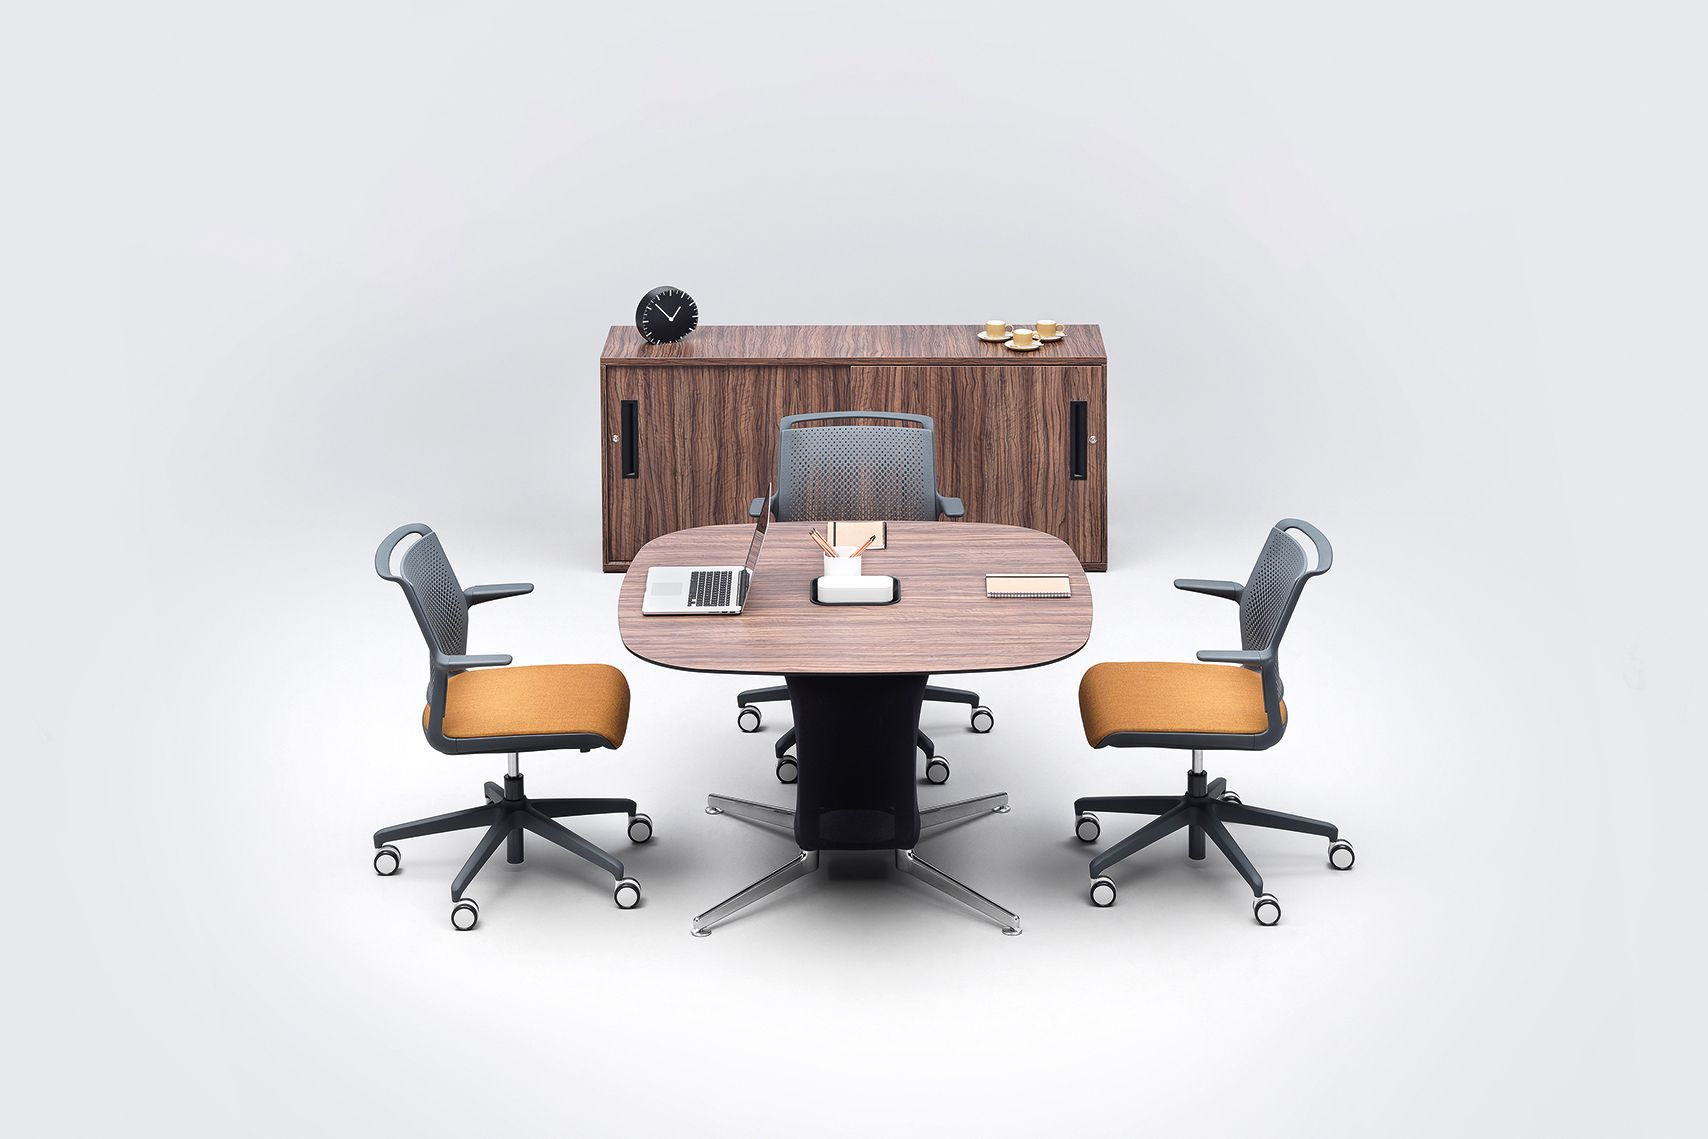 Architecture Design Values the ad-lib table meeting tables were developed to work with ad-lib